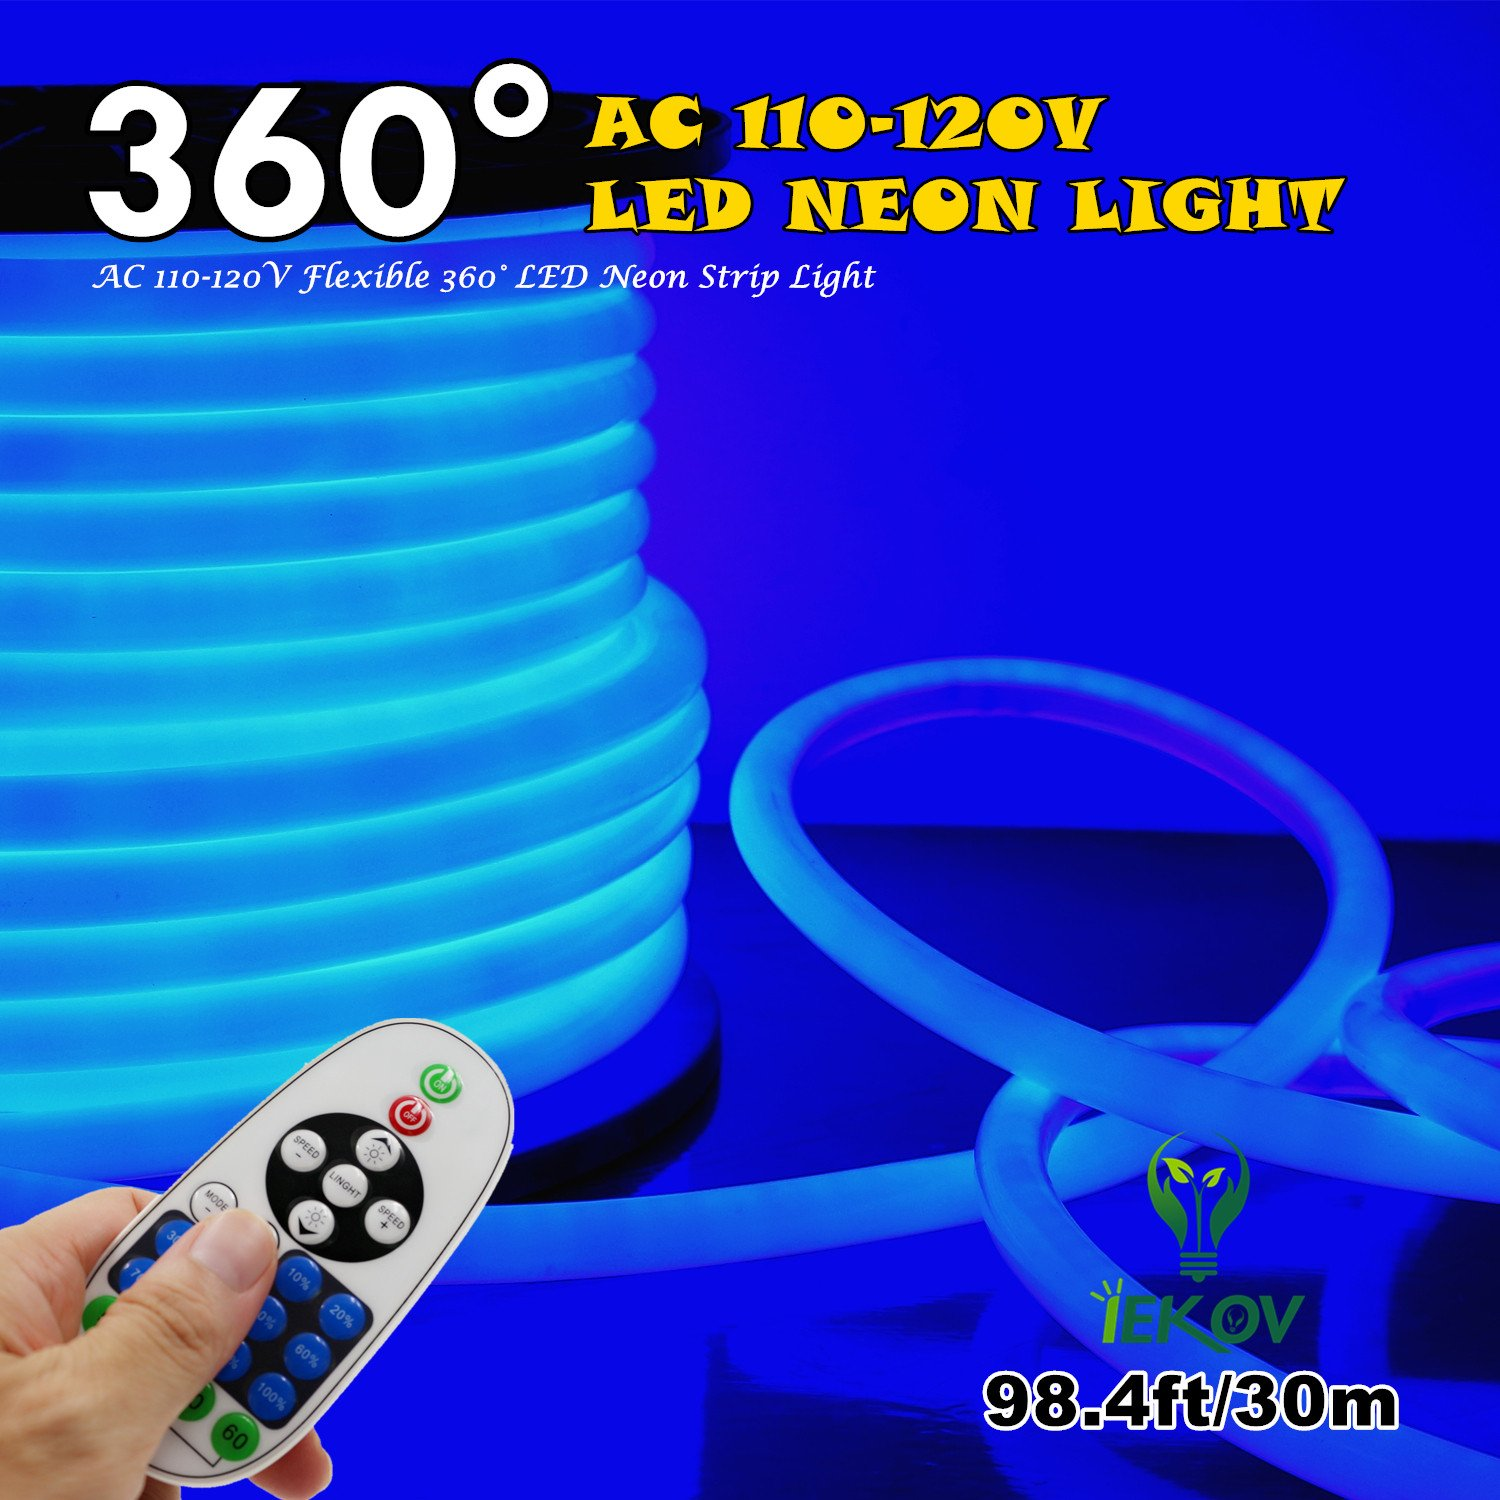 [UPGRADE] 360° LED NEON LIGHT, IEKOV™ AC 110-120V Flexible 360 Degree LED Neon Strip Lights, Dimmable & Waterproof NEON LED Rope Light + Remote Controller for Decoration (98.4ft/30m, Blue)